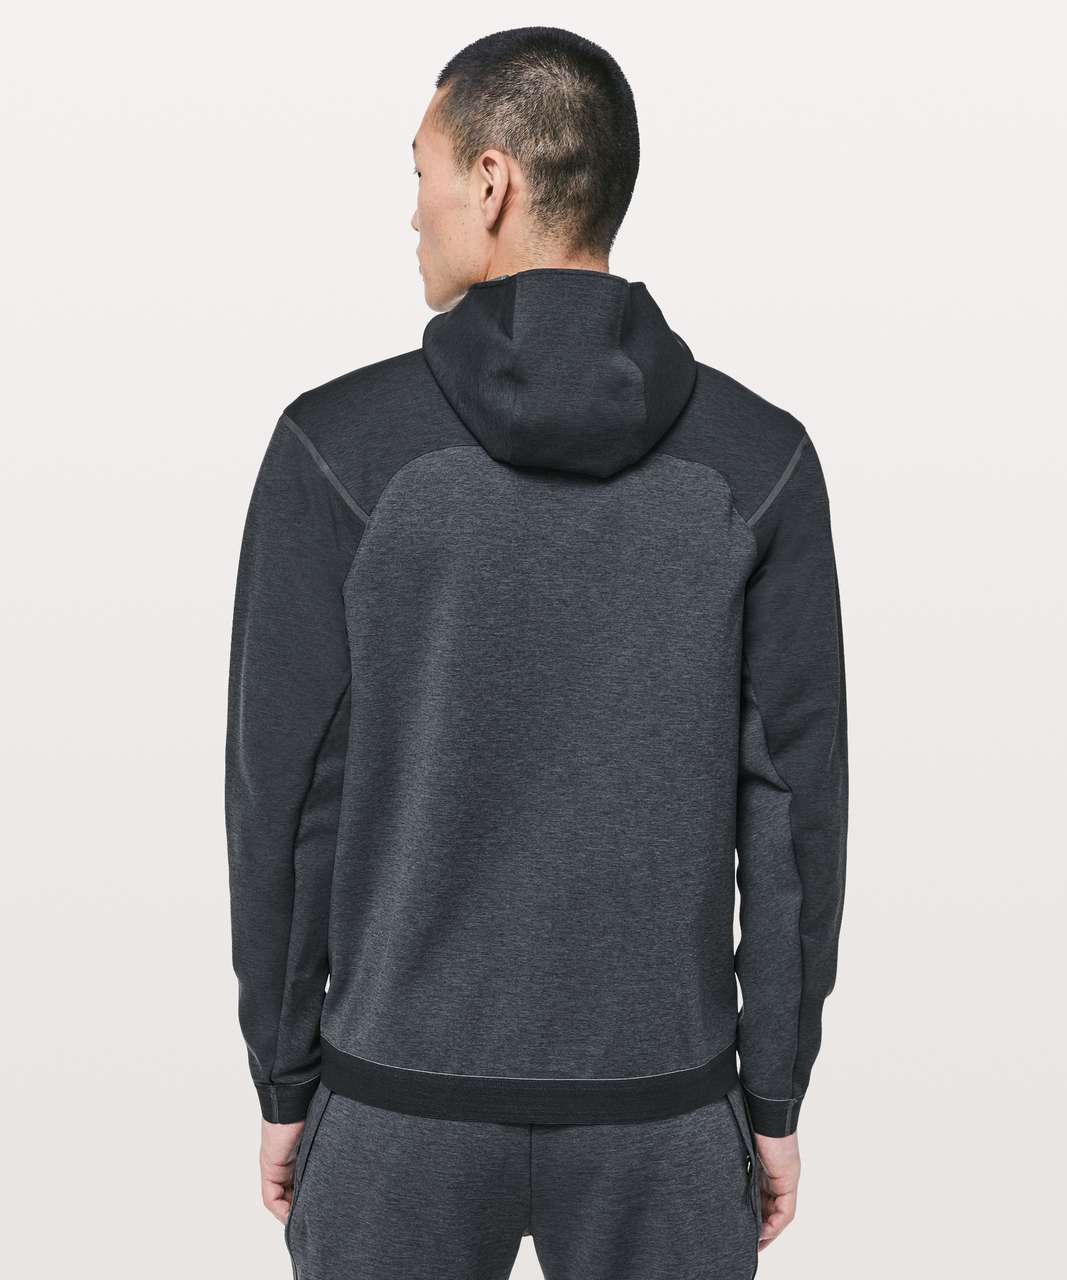 Lululemon Diffract Full Zip Hoodie *lululemon lab - Mystic Green / Mercury Marine